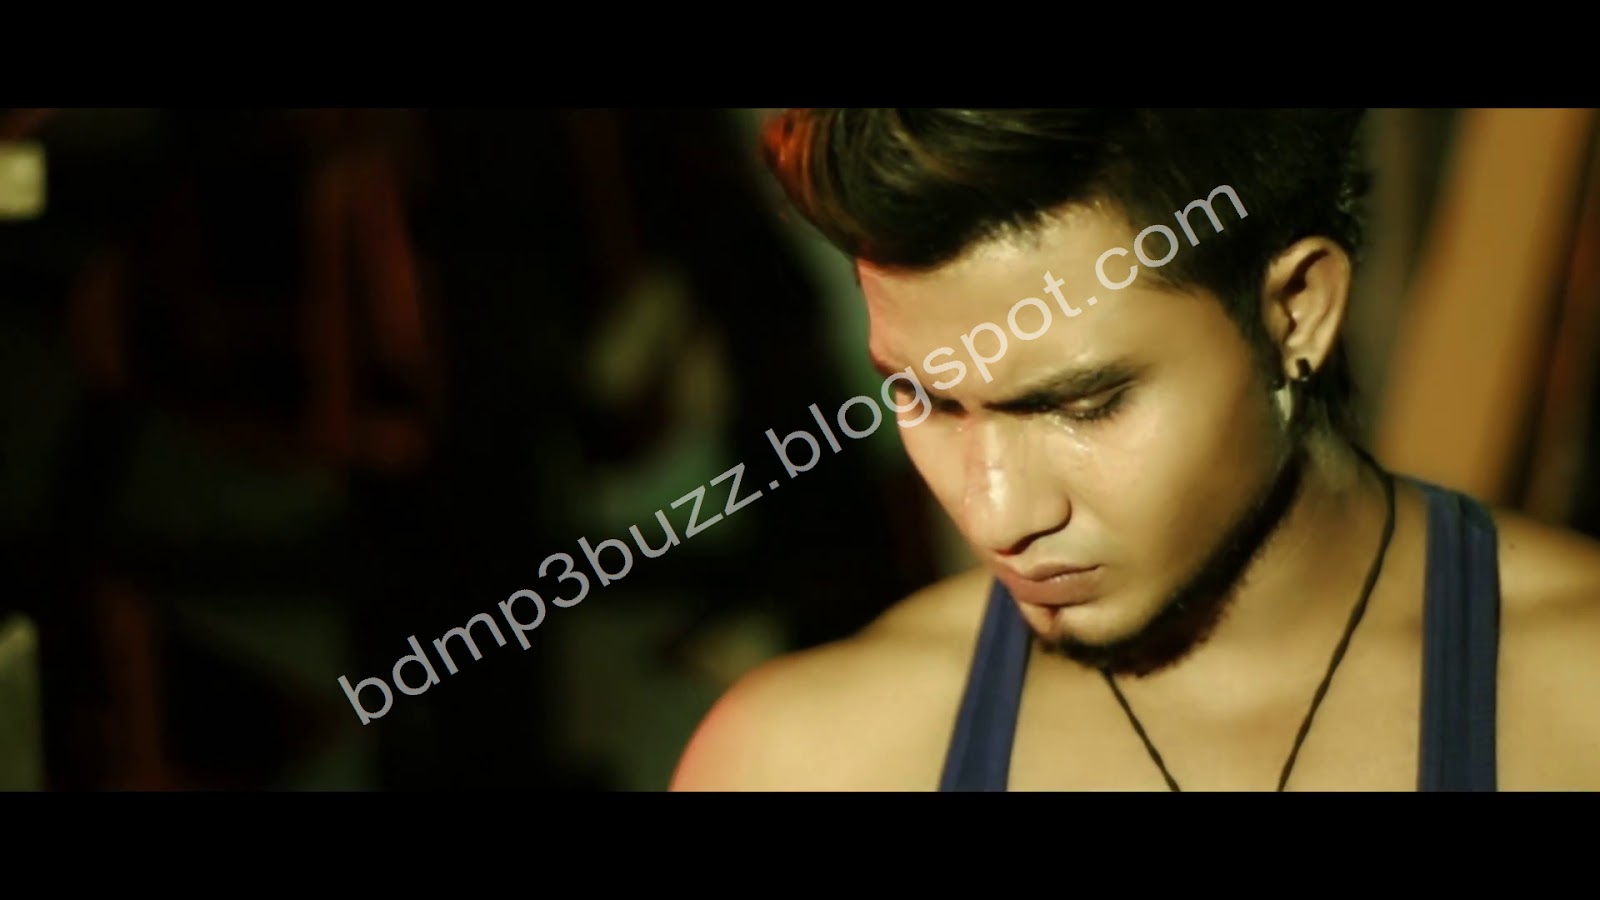 Obujh mon new full hd music video syed omy bangla new song.